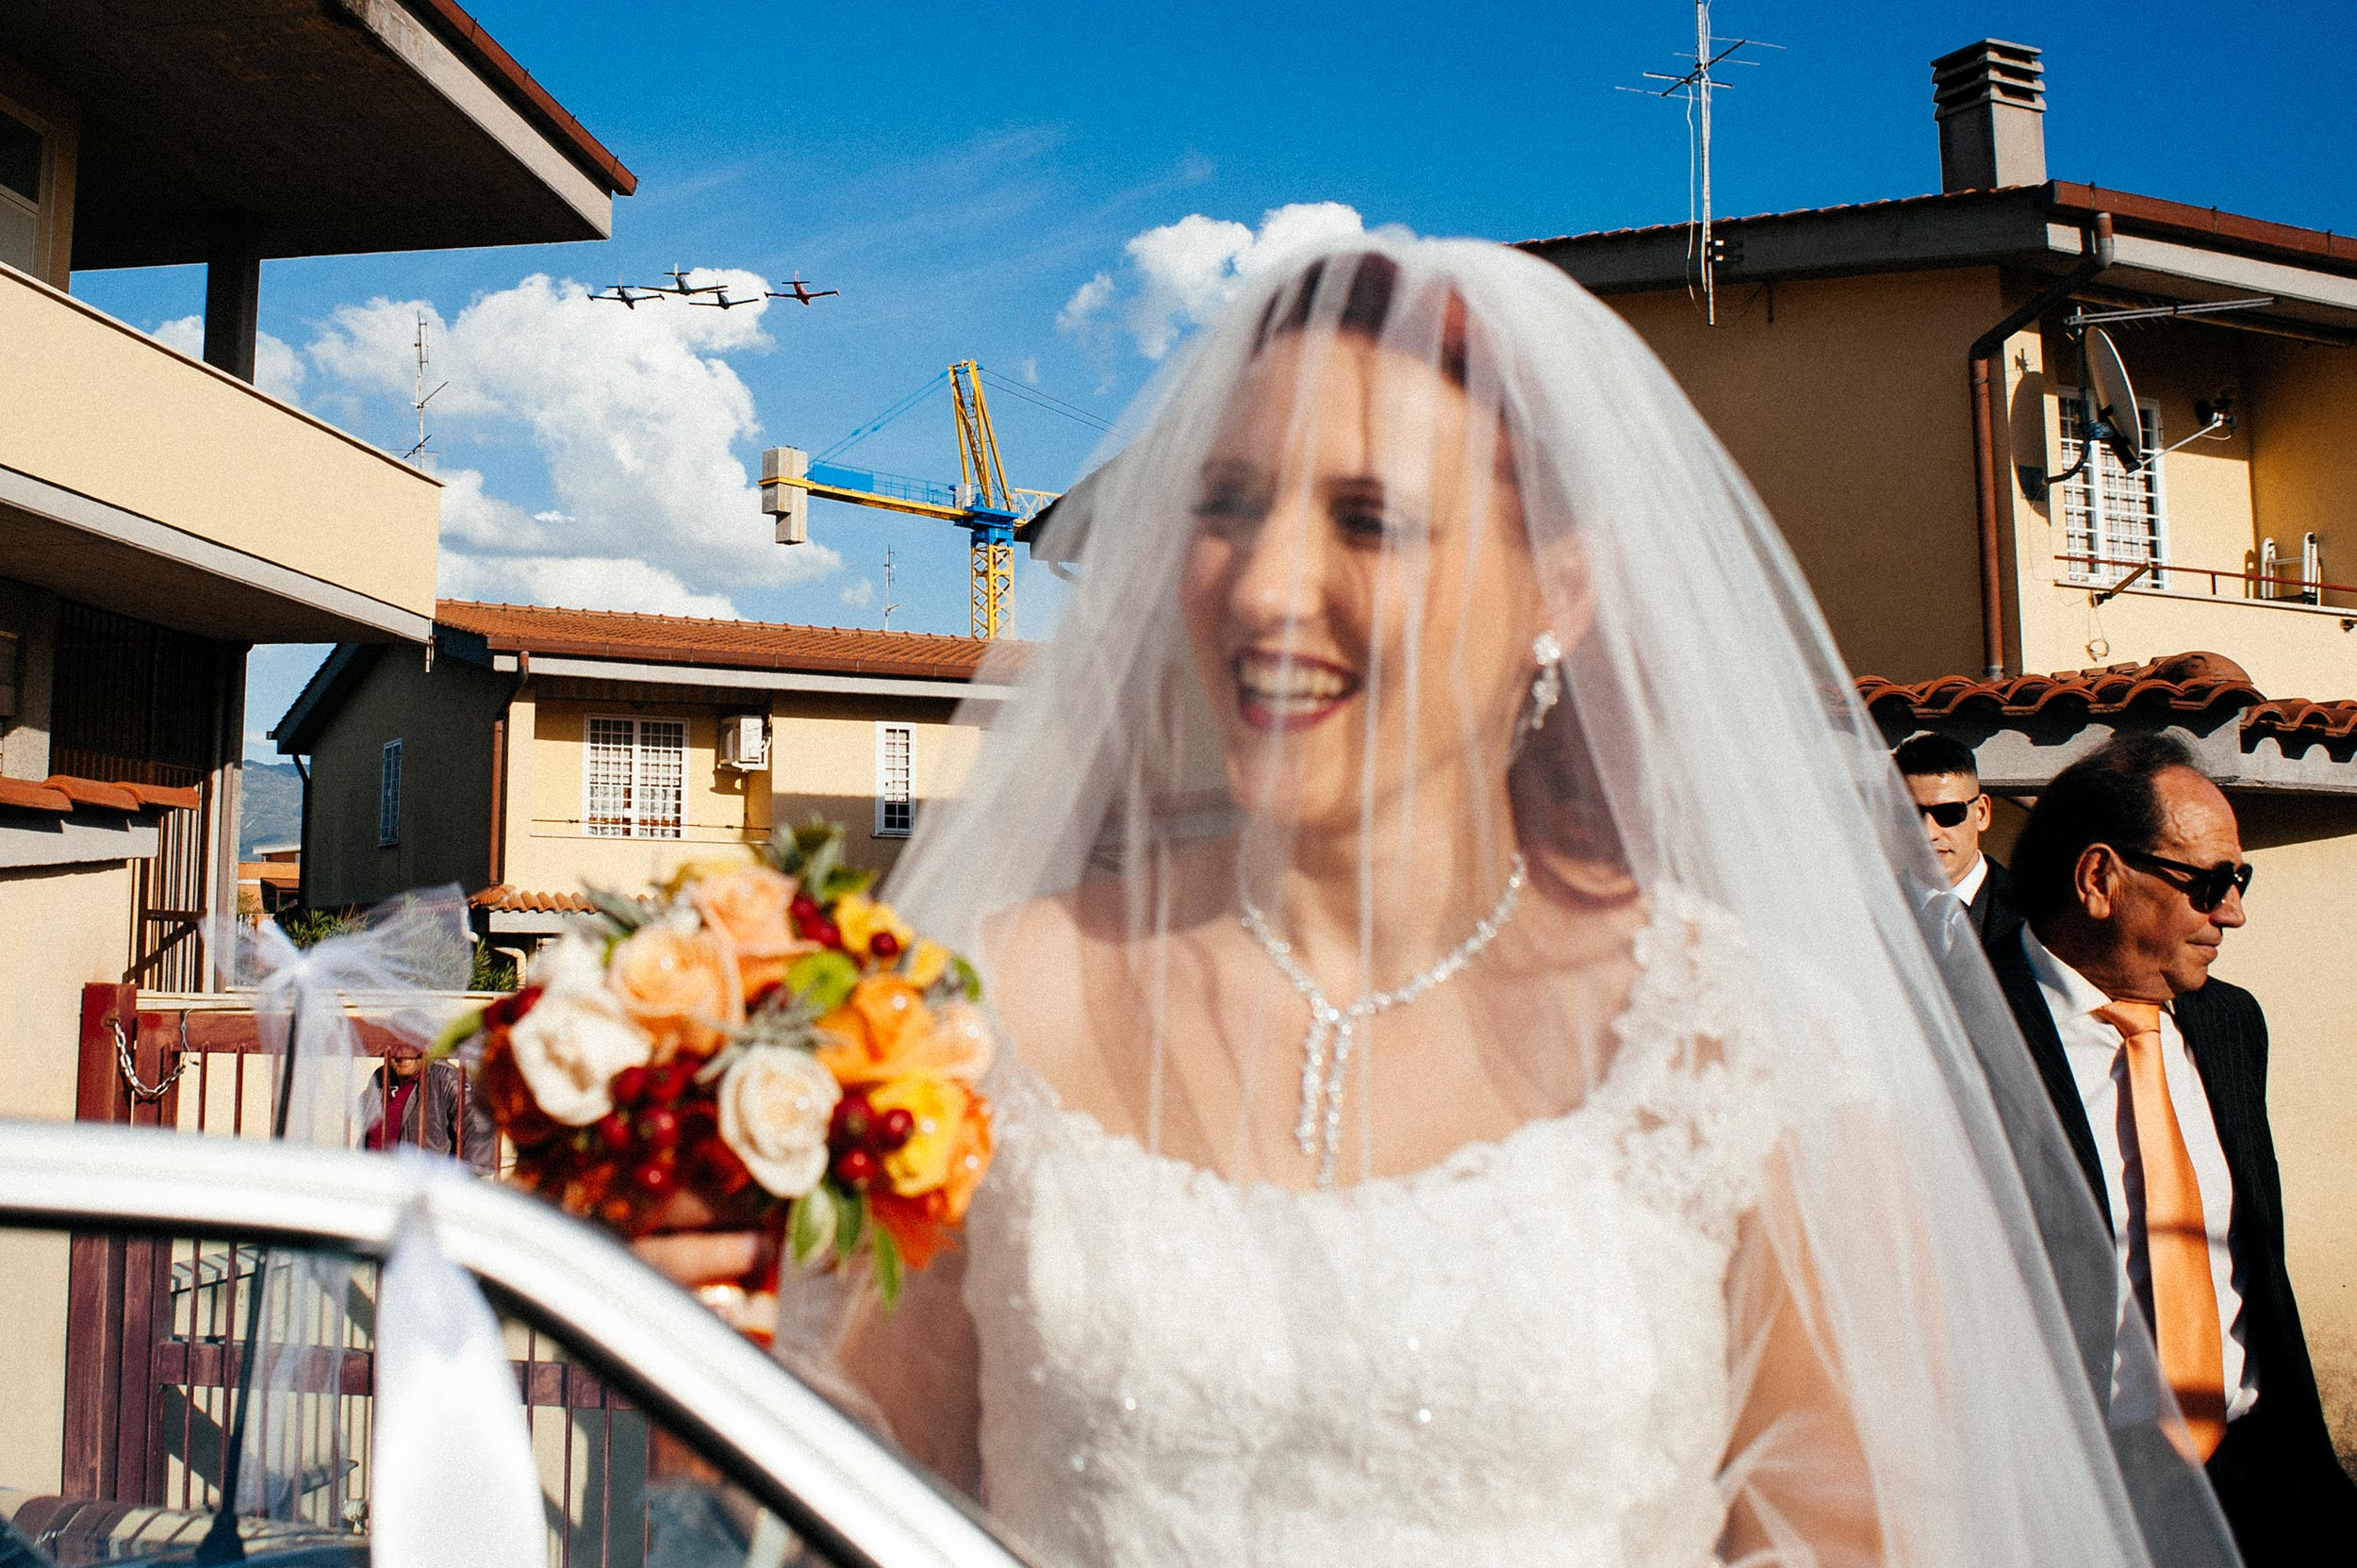 bride-going-to-ceremony-while-aircrafts-pass-over-her-head.jpg